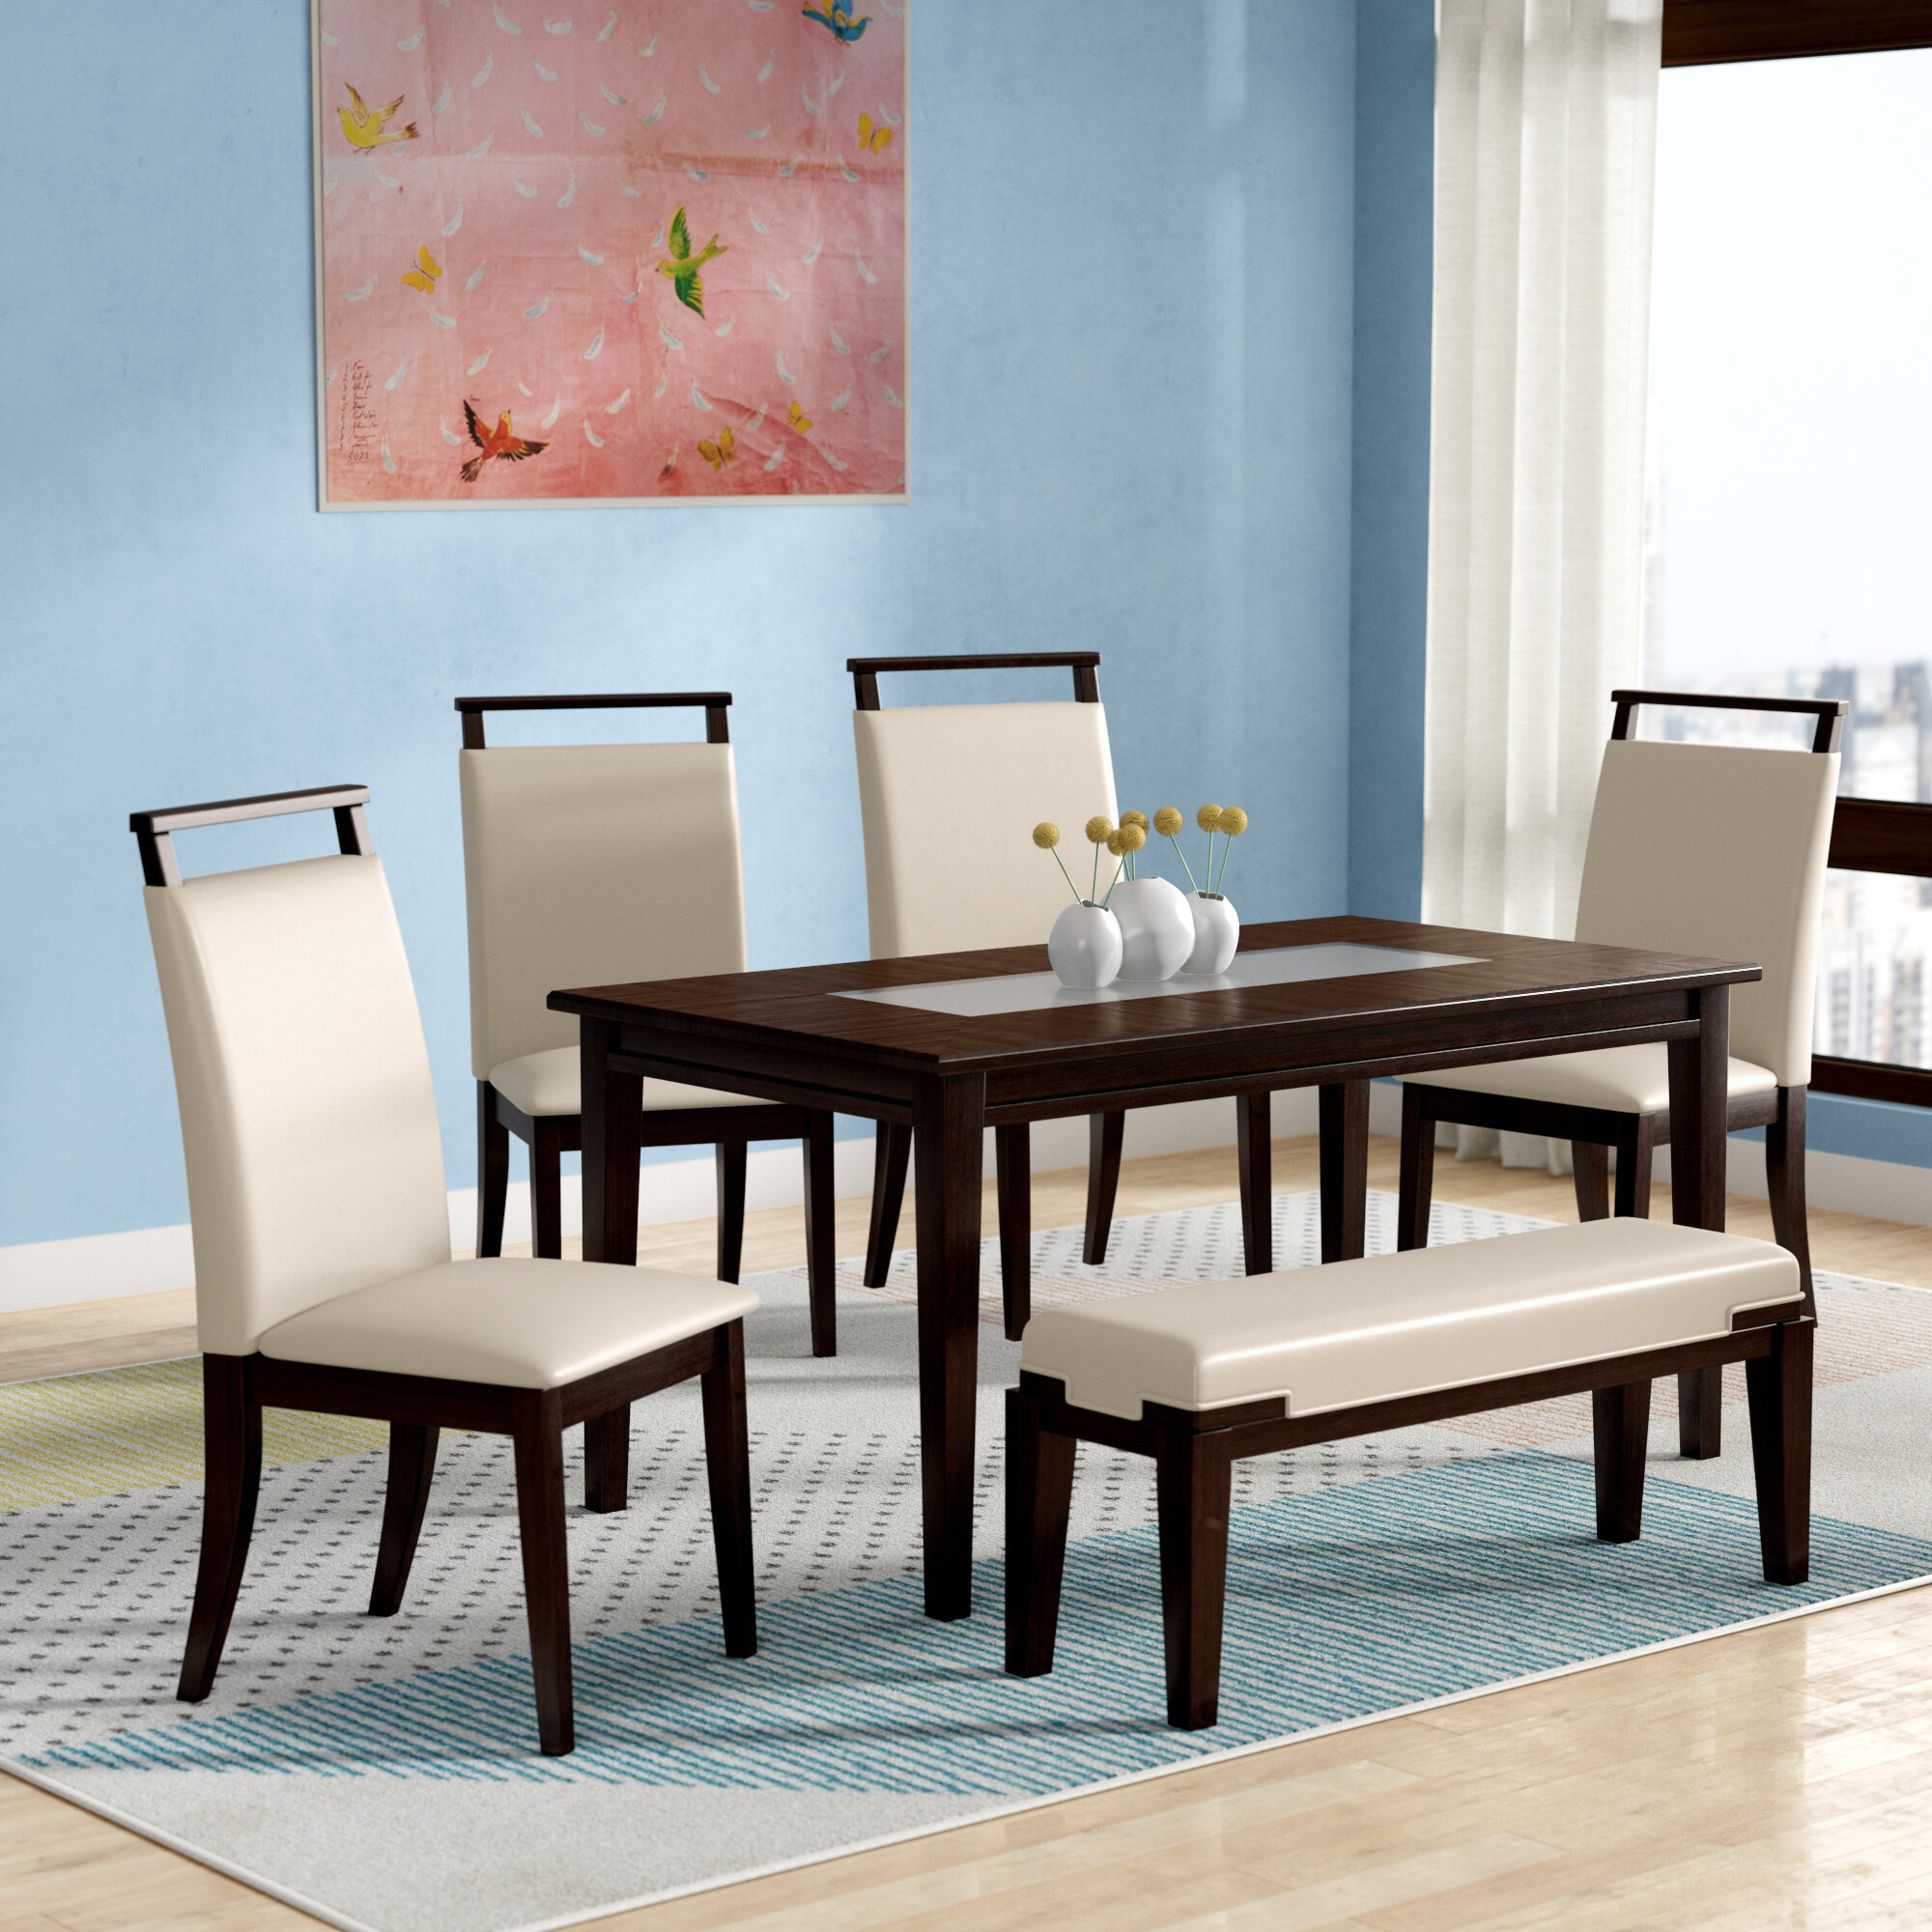 Delicieux Depew 6 Piece Dining Set